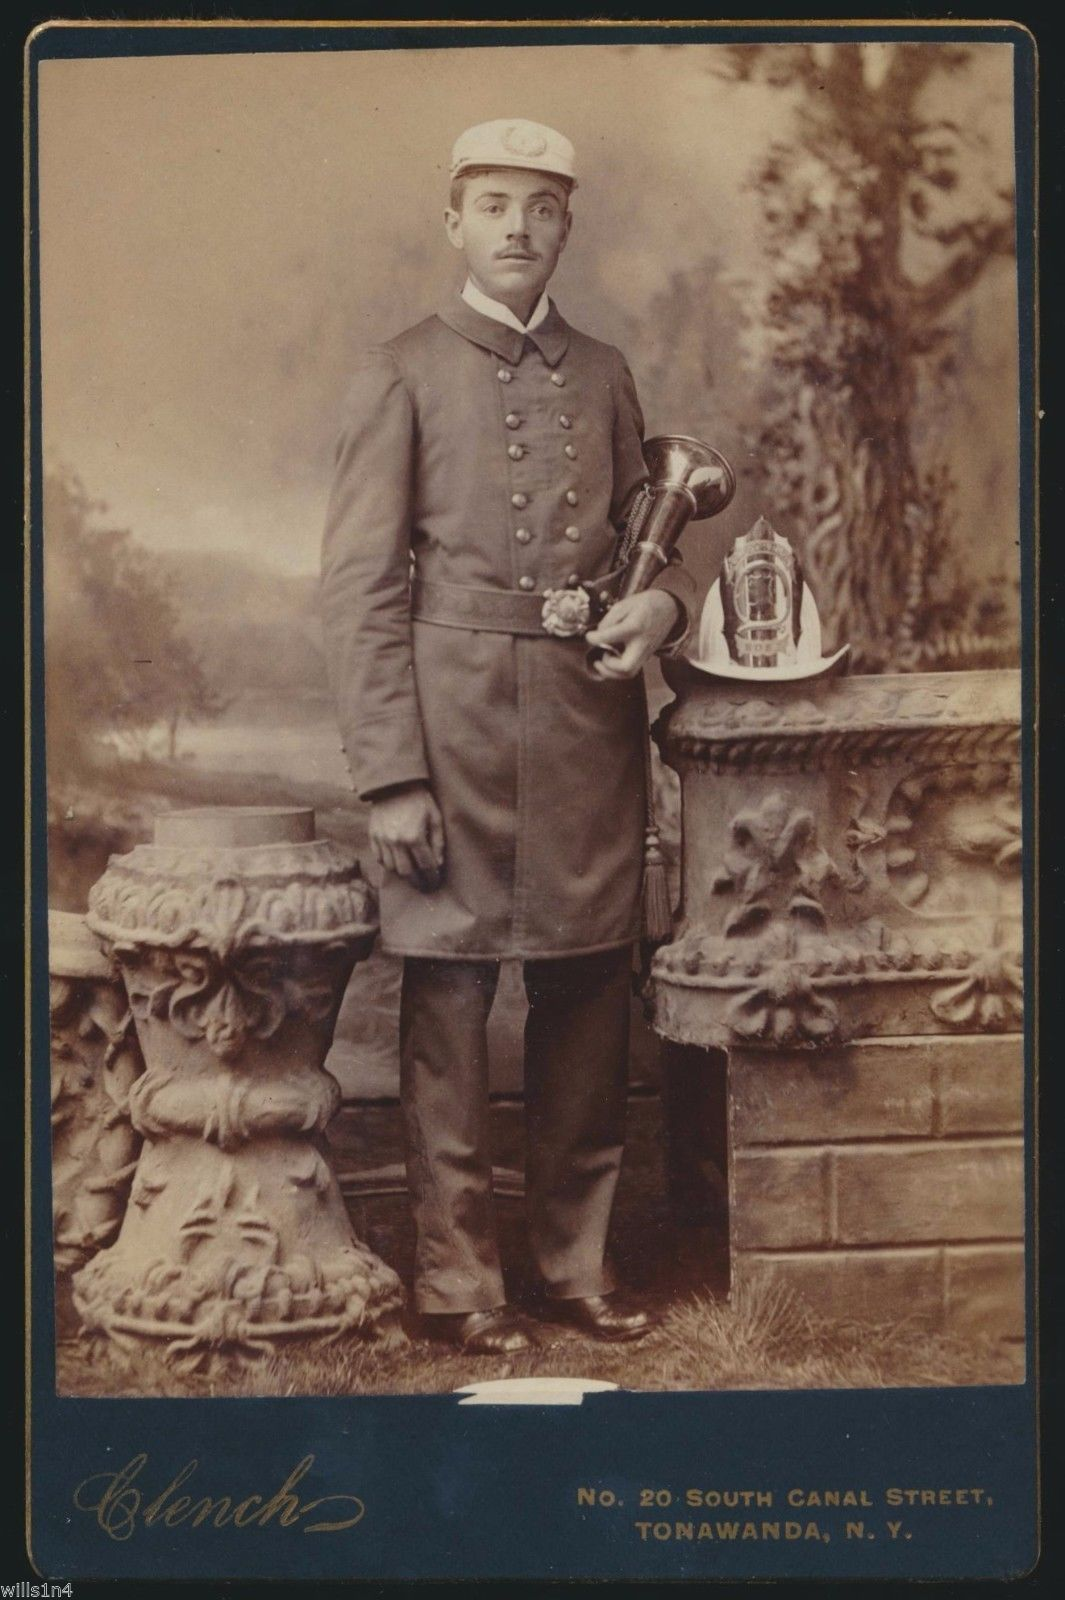 Firefighter by Clench, 20 South Canal St., photo portrait (c1900).jpg